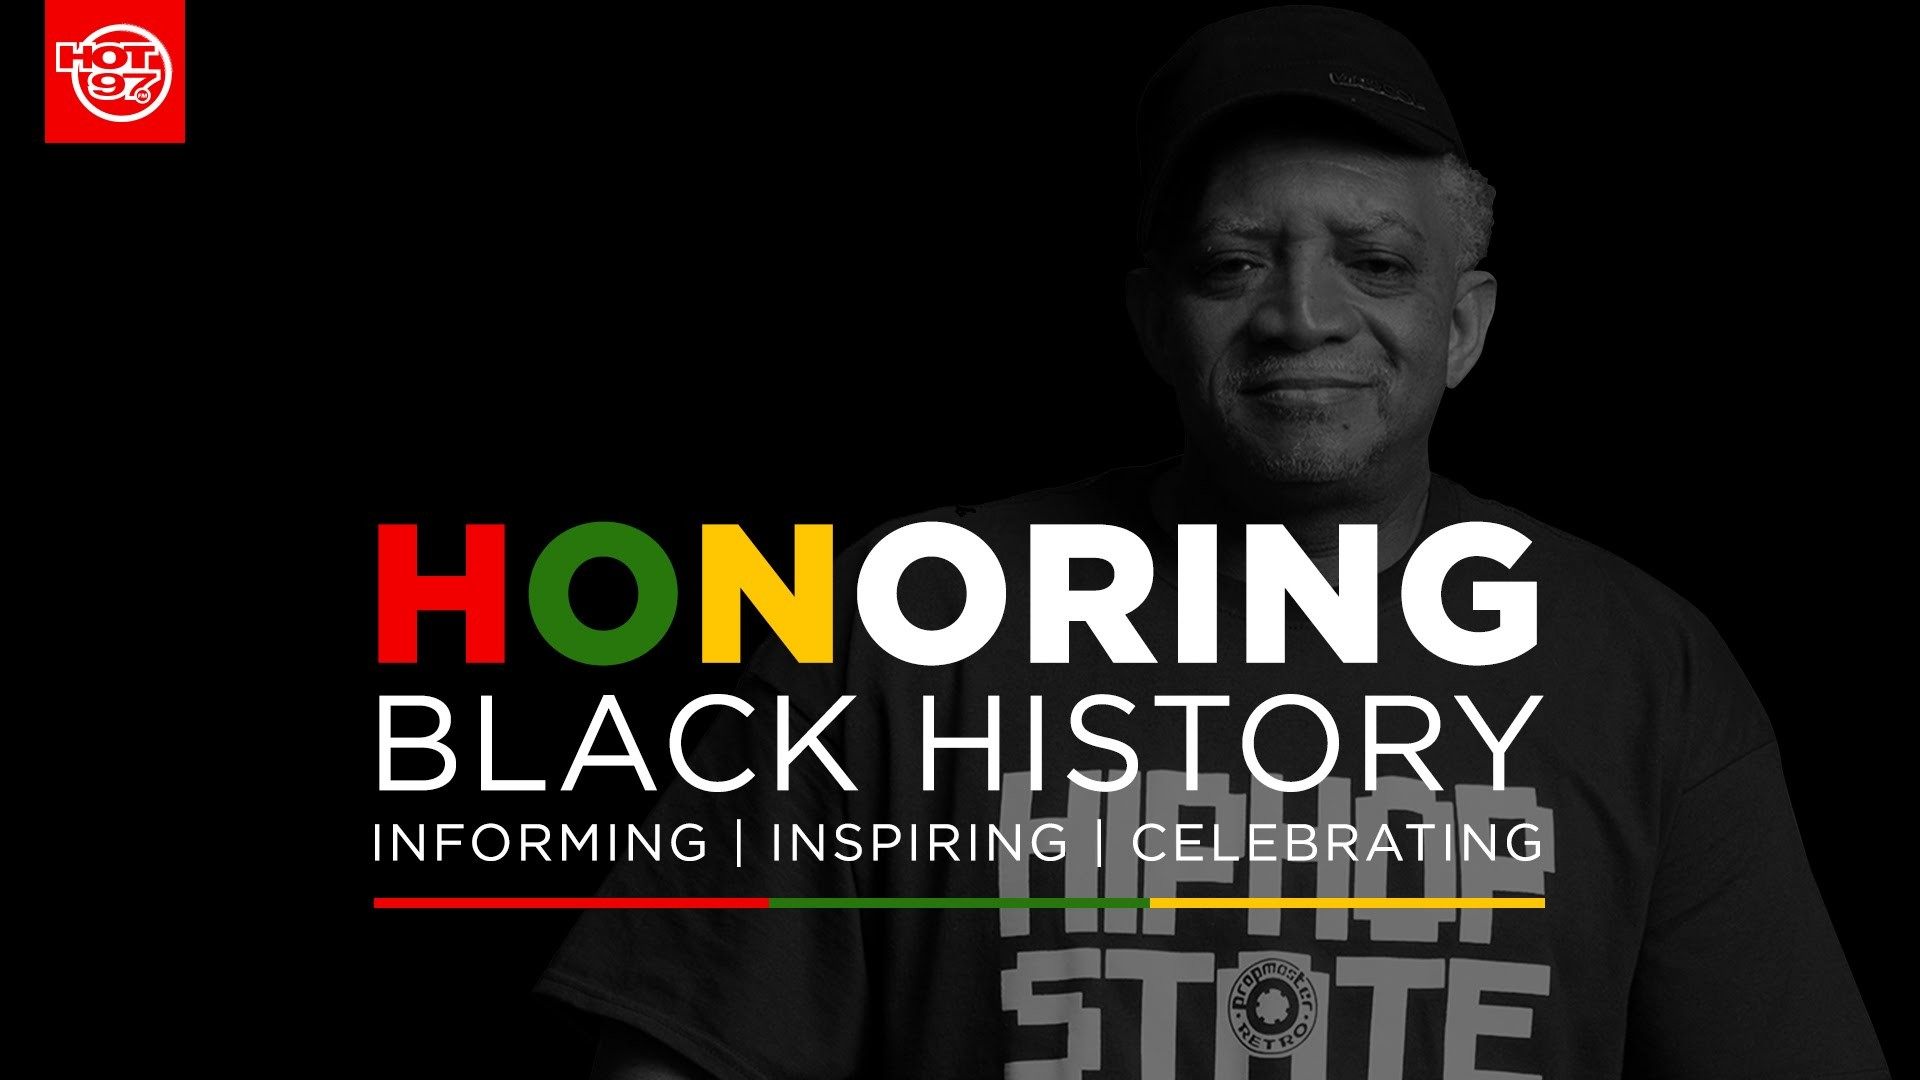 1920x1080 DJ Red Alert - Honoring Black History Month